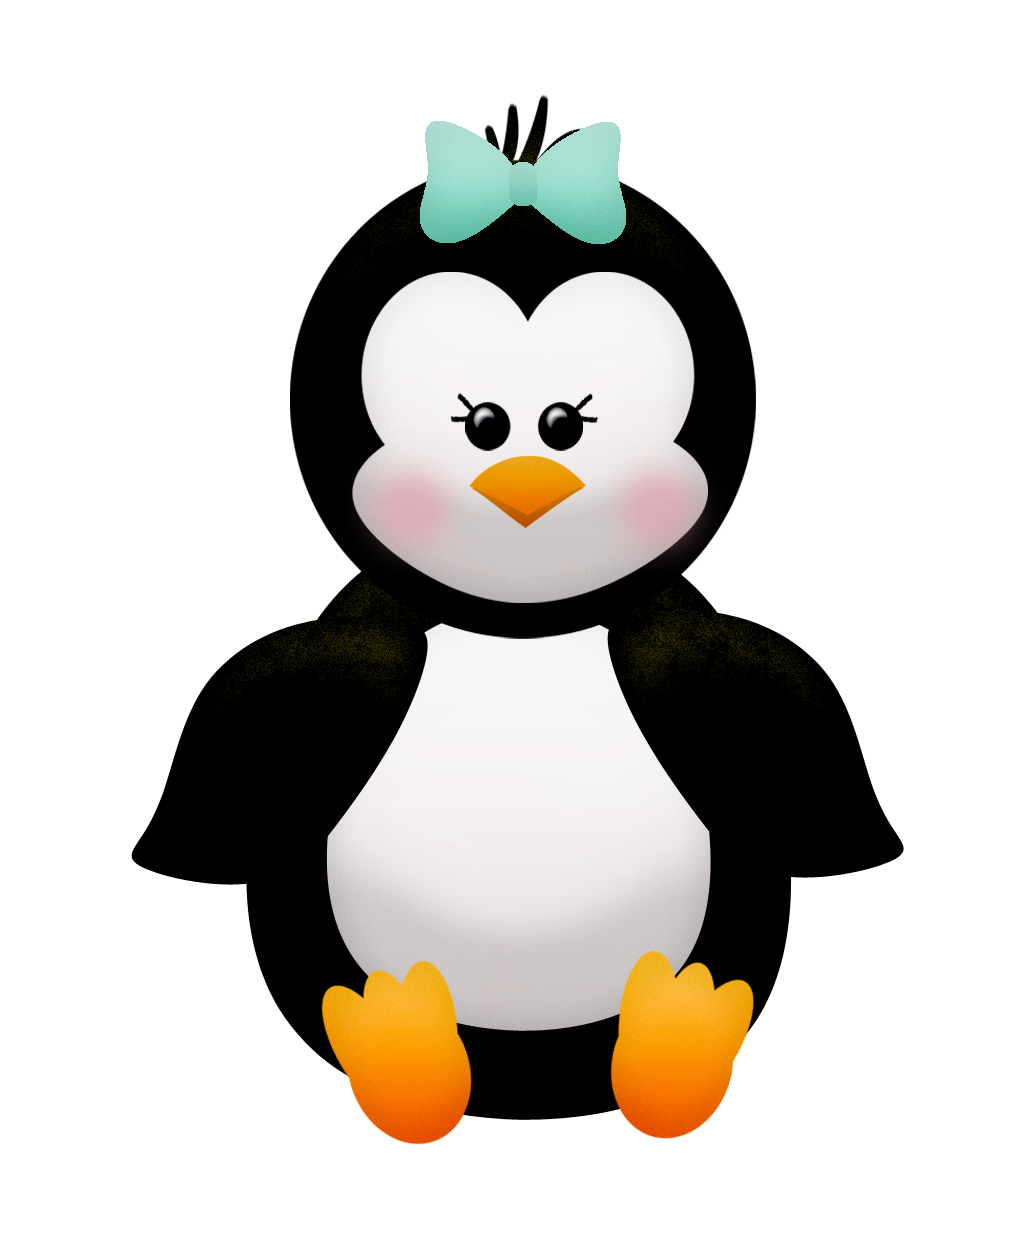 Penguin clipart spring. Penguins free download on